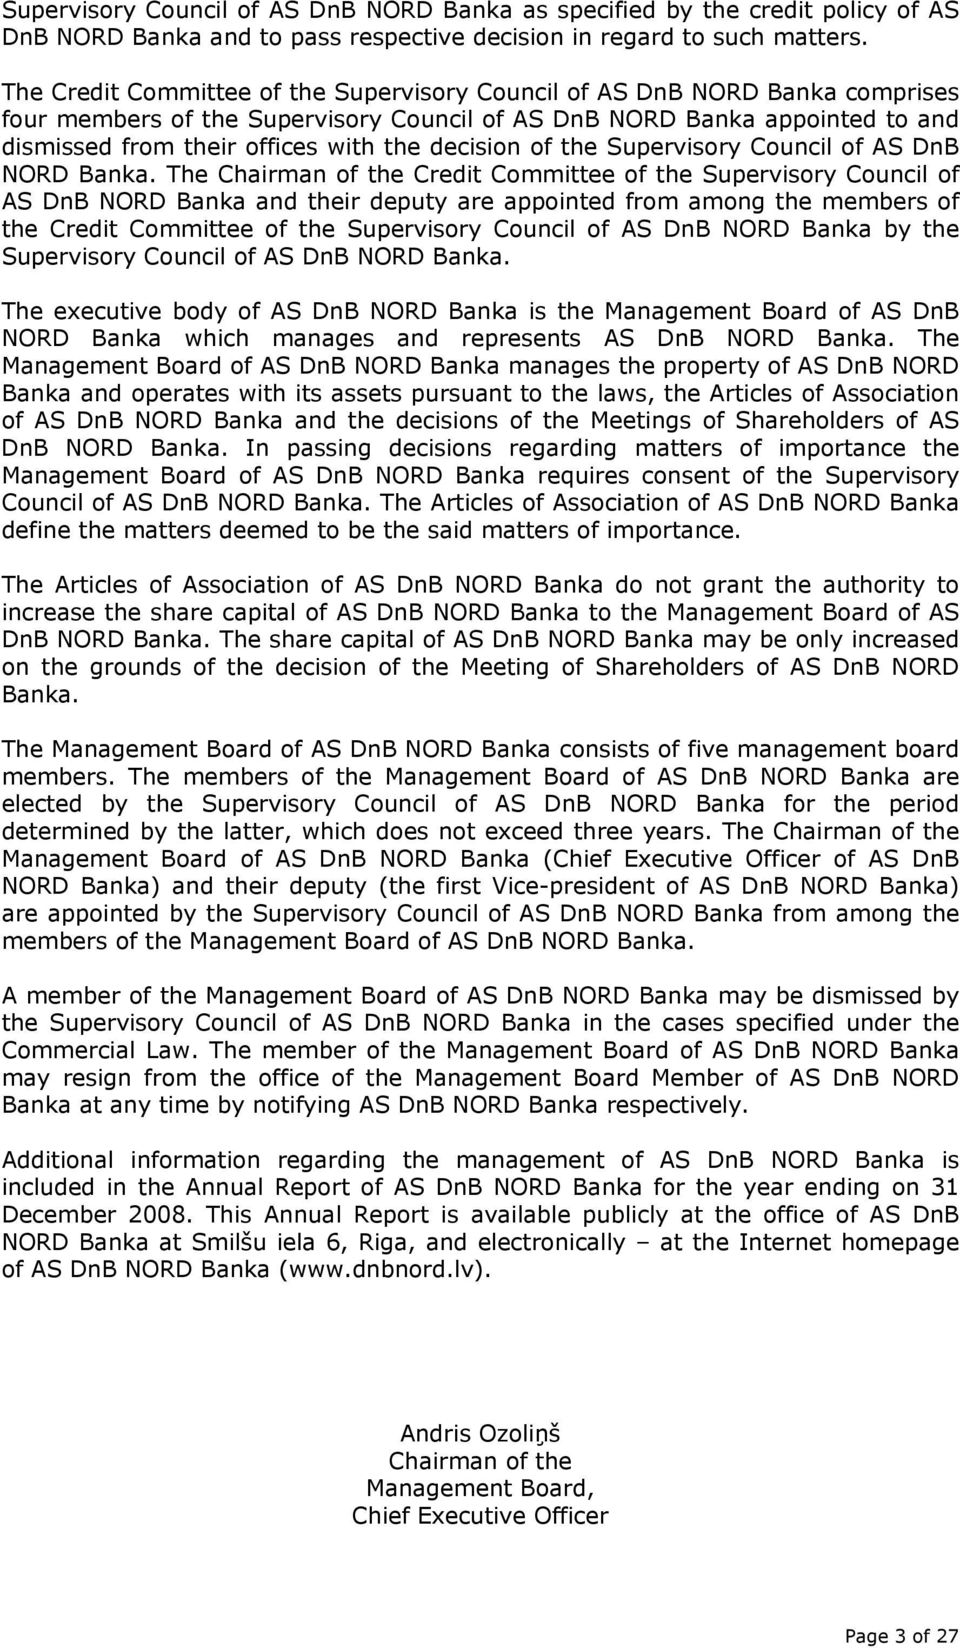 decision of the Supervisory Council of AS DnB NORD Banka.